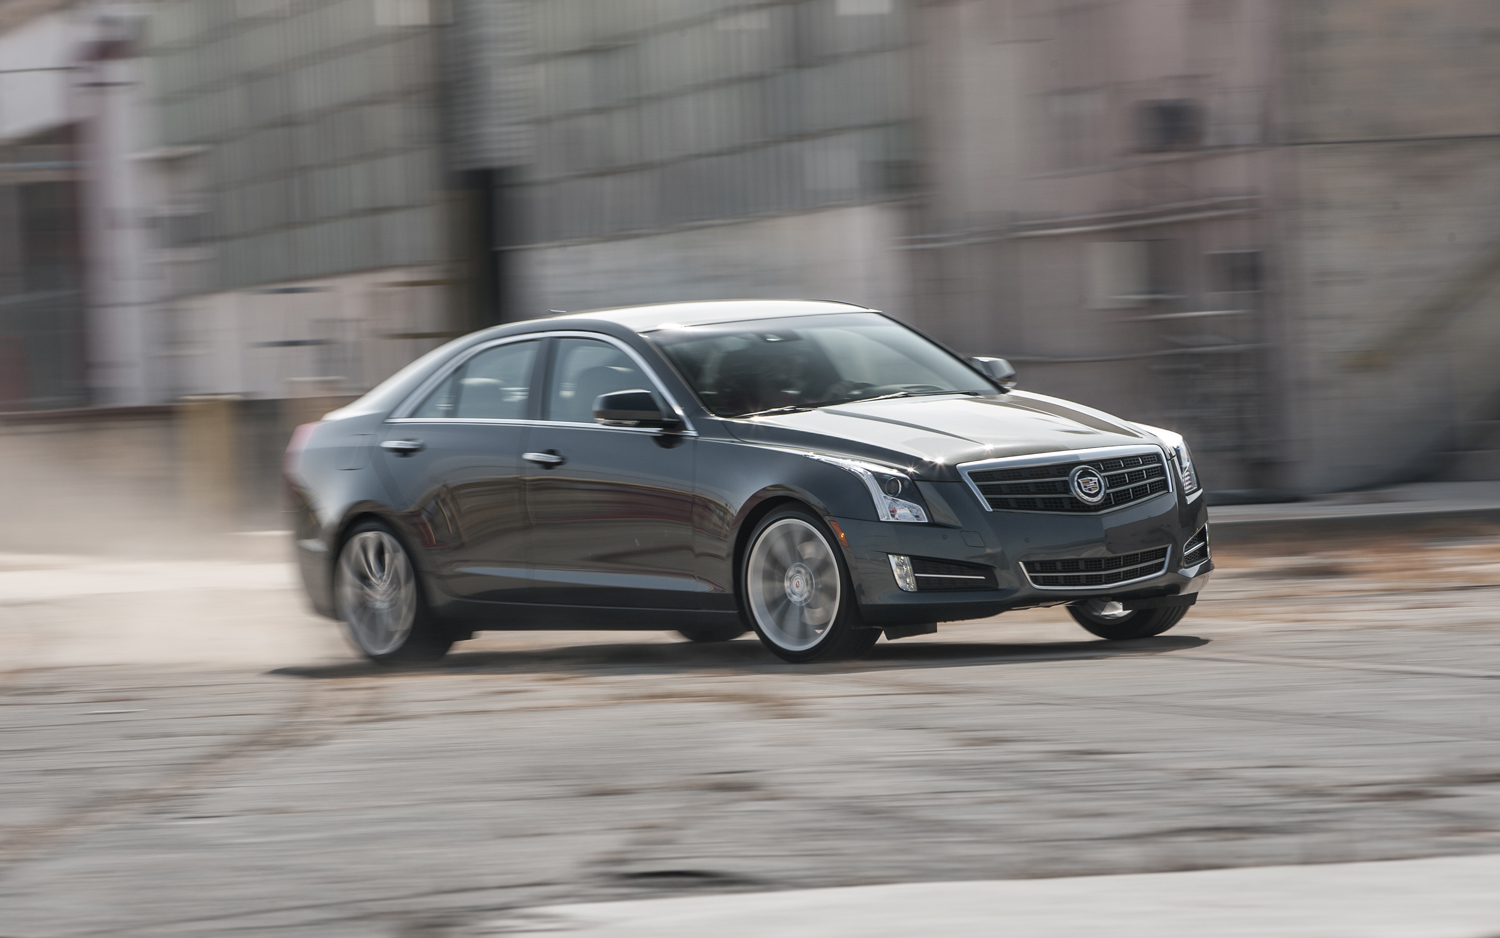 cadillac ats manual transmission problems